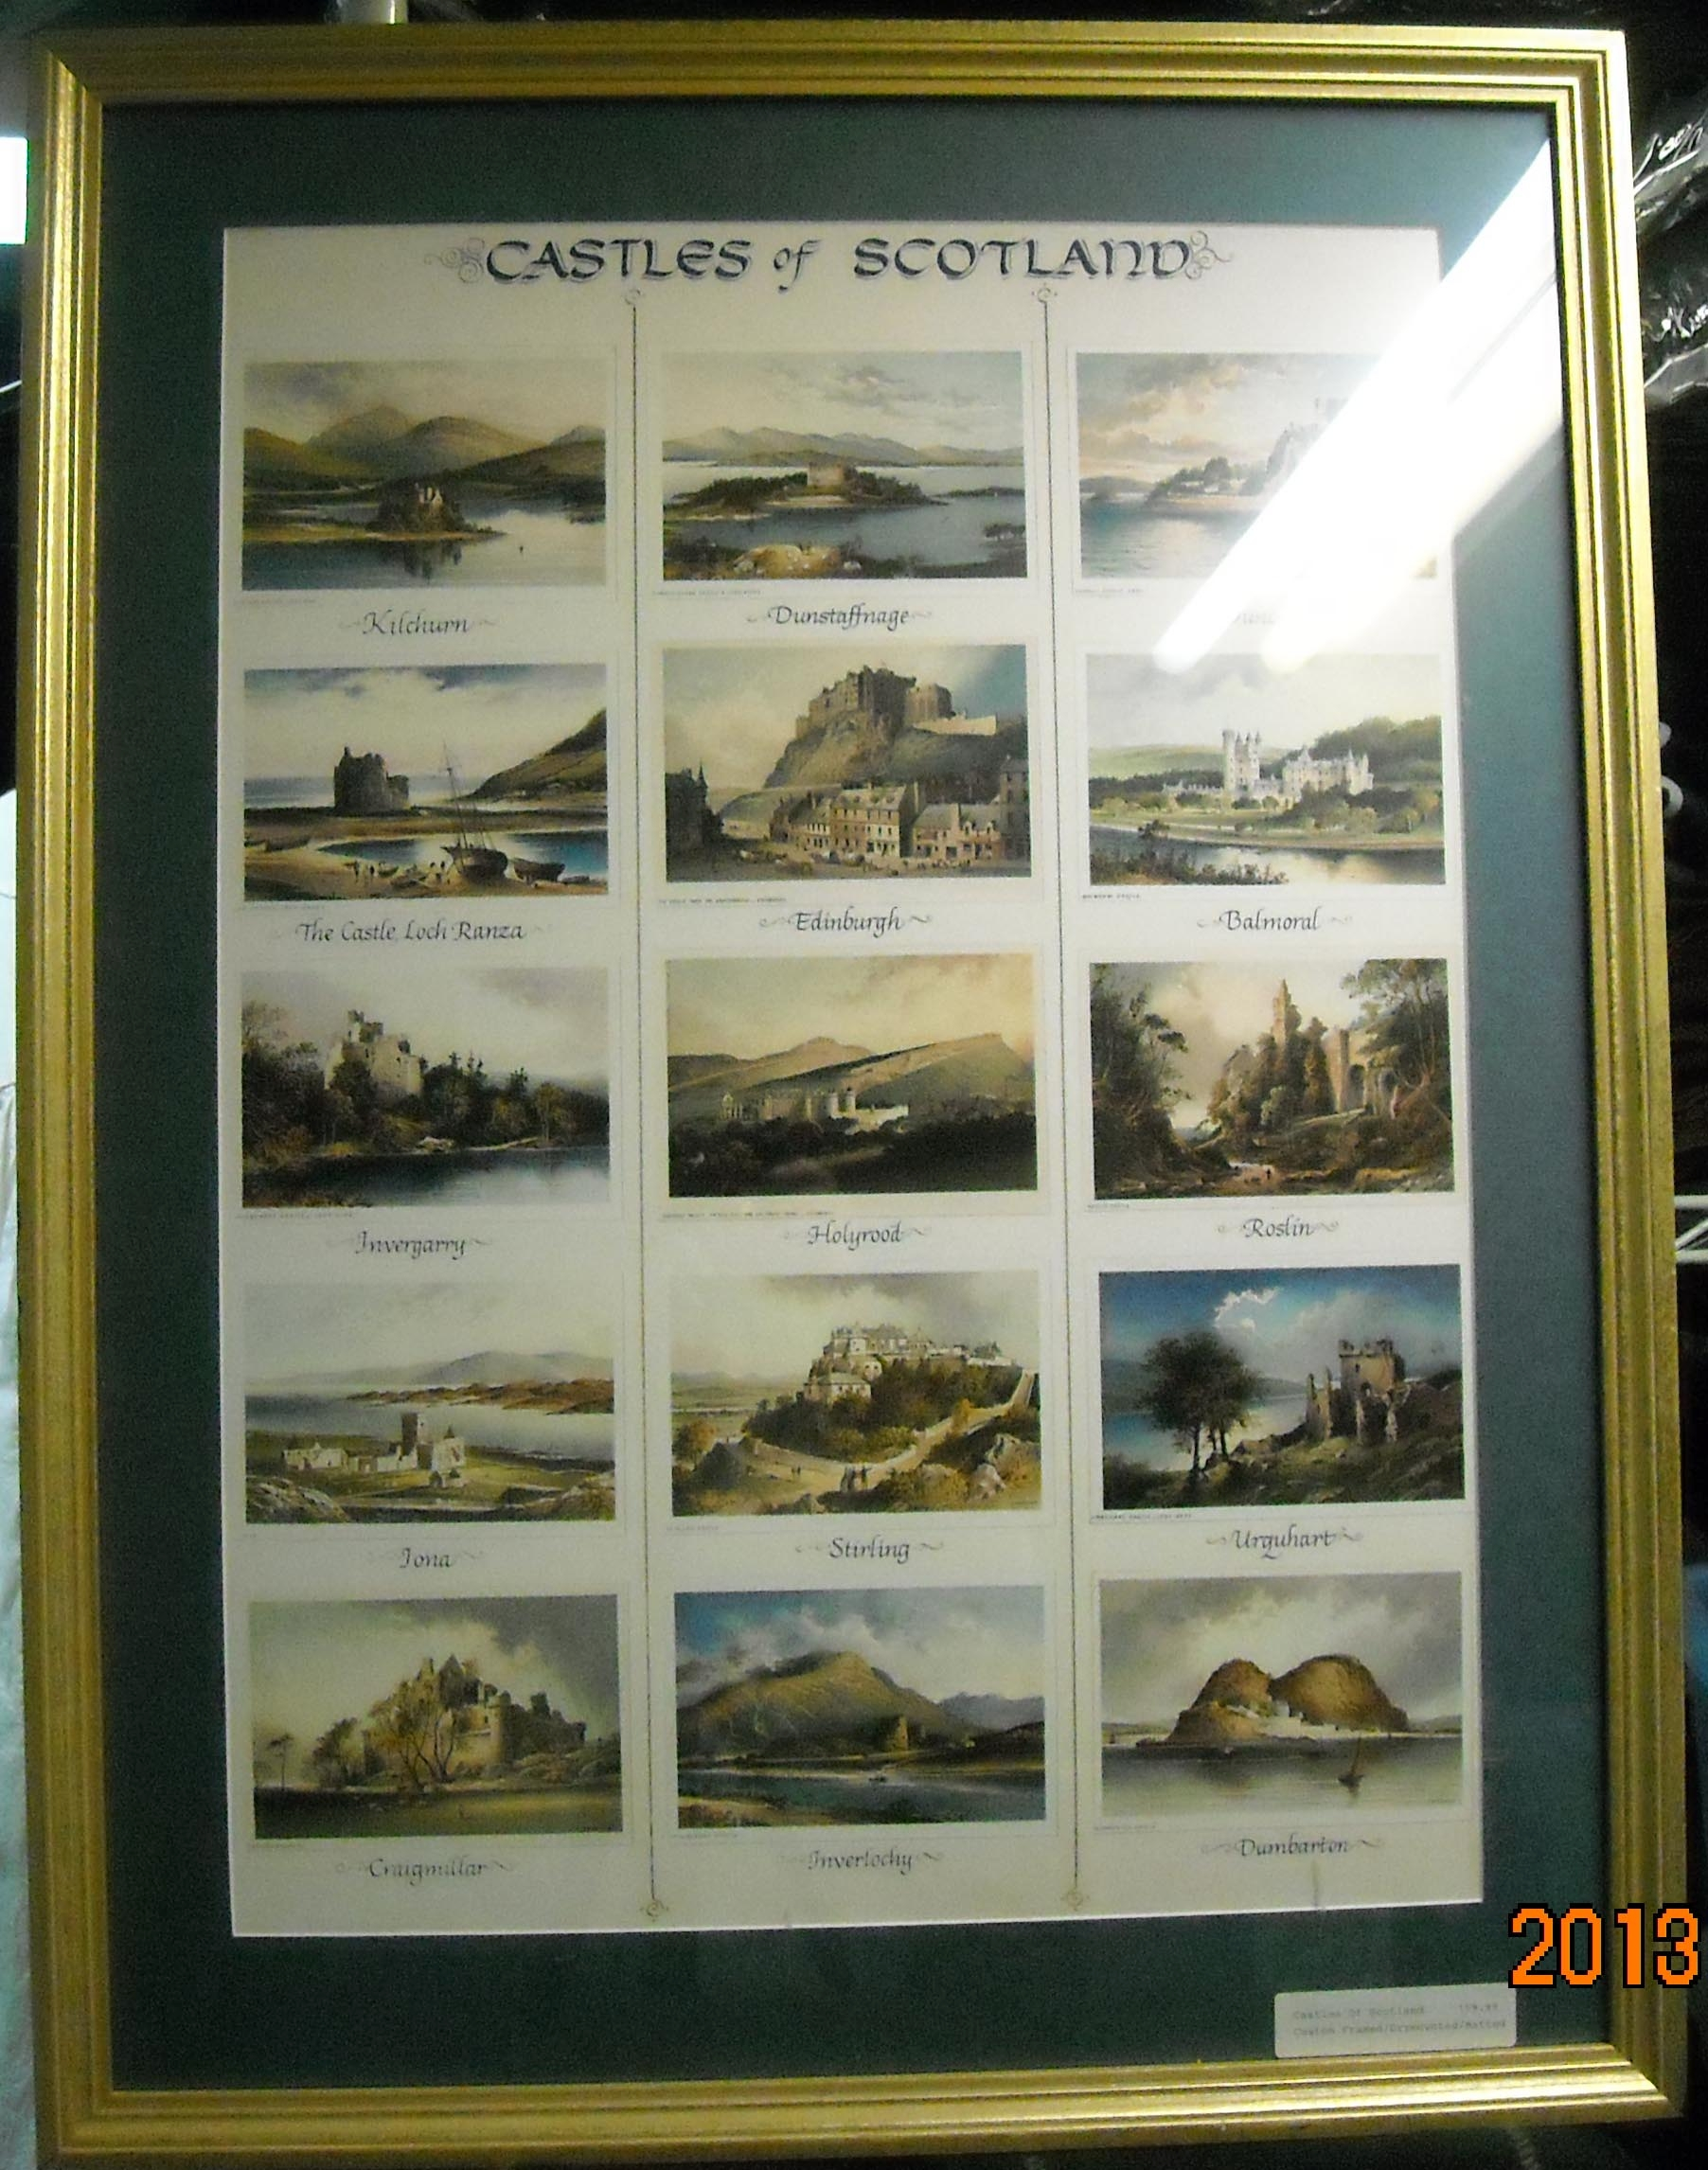 Framed Illustrated Castles of Scotland Picture